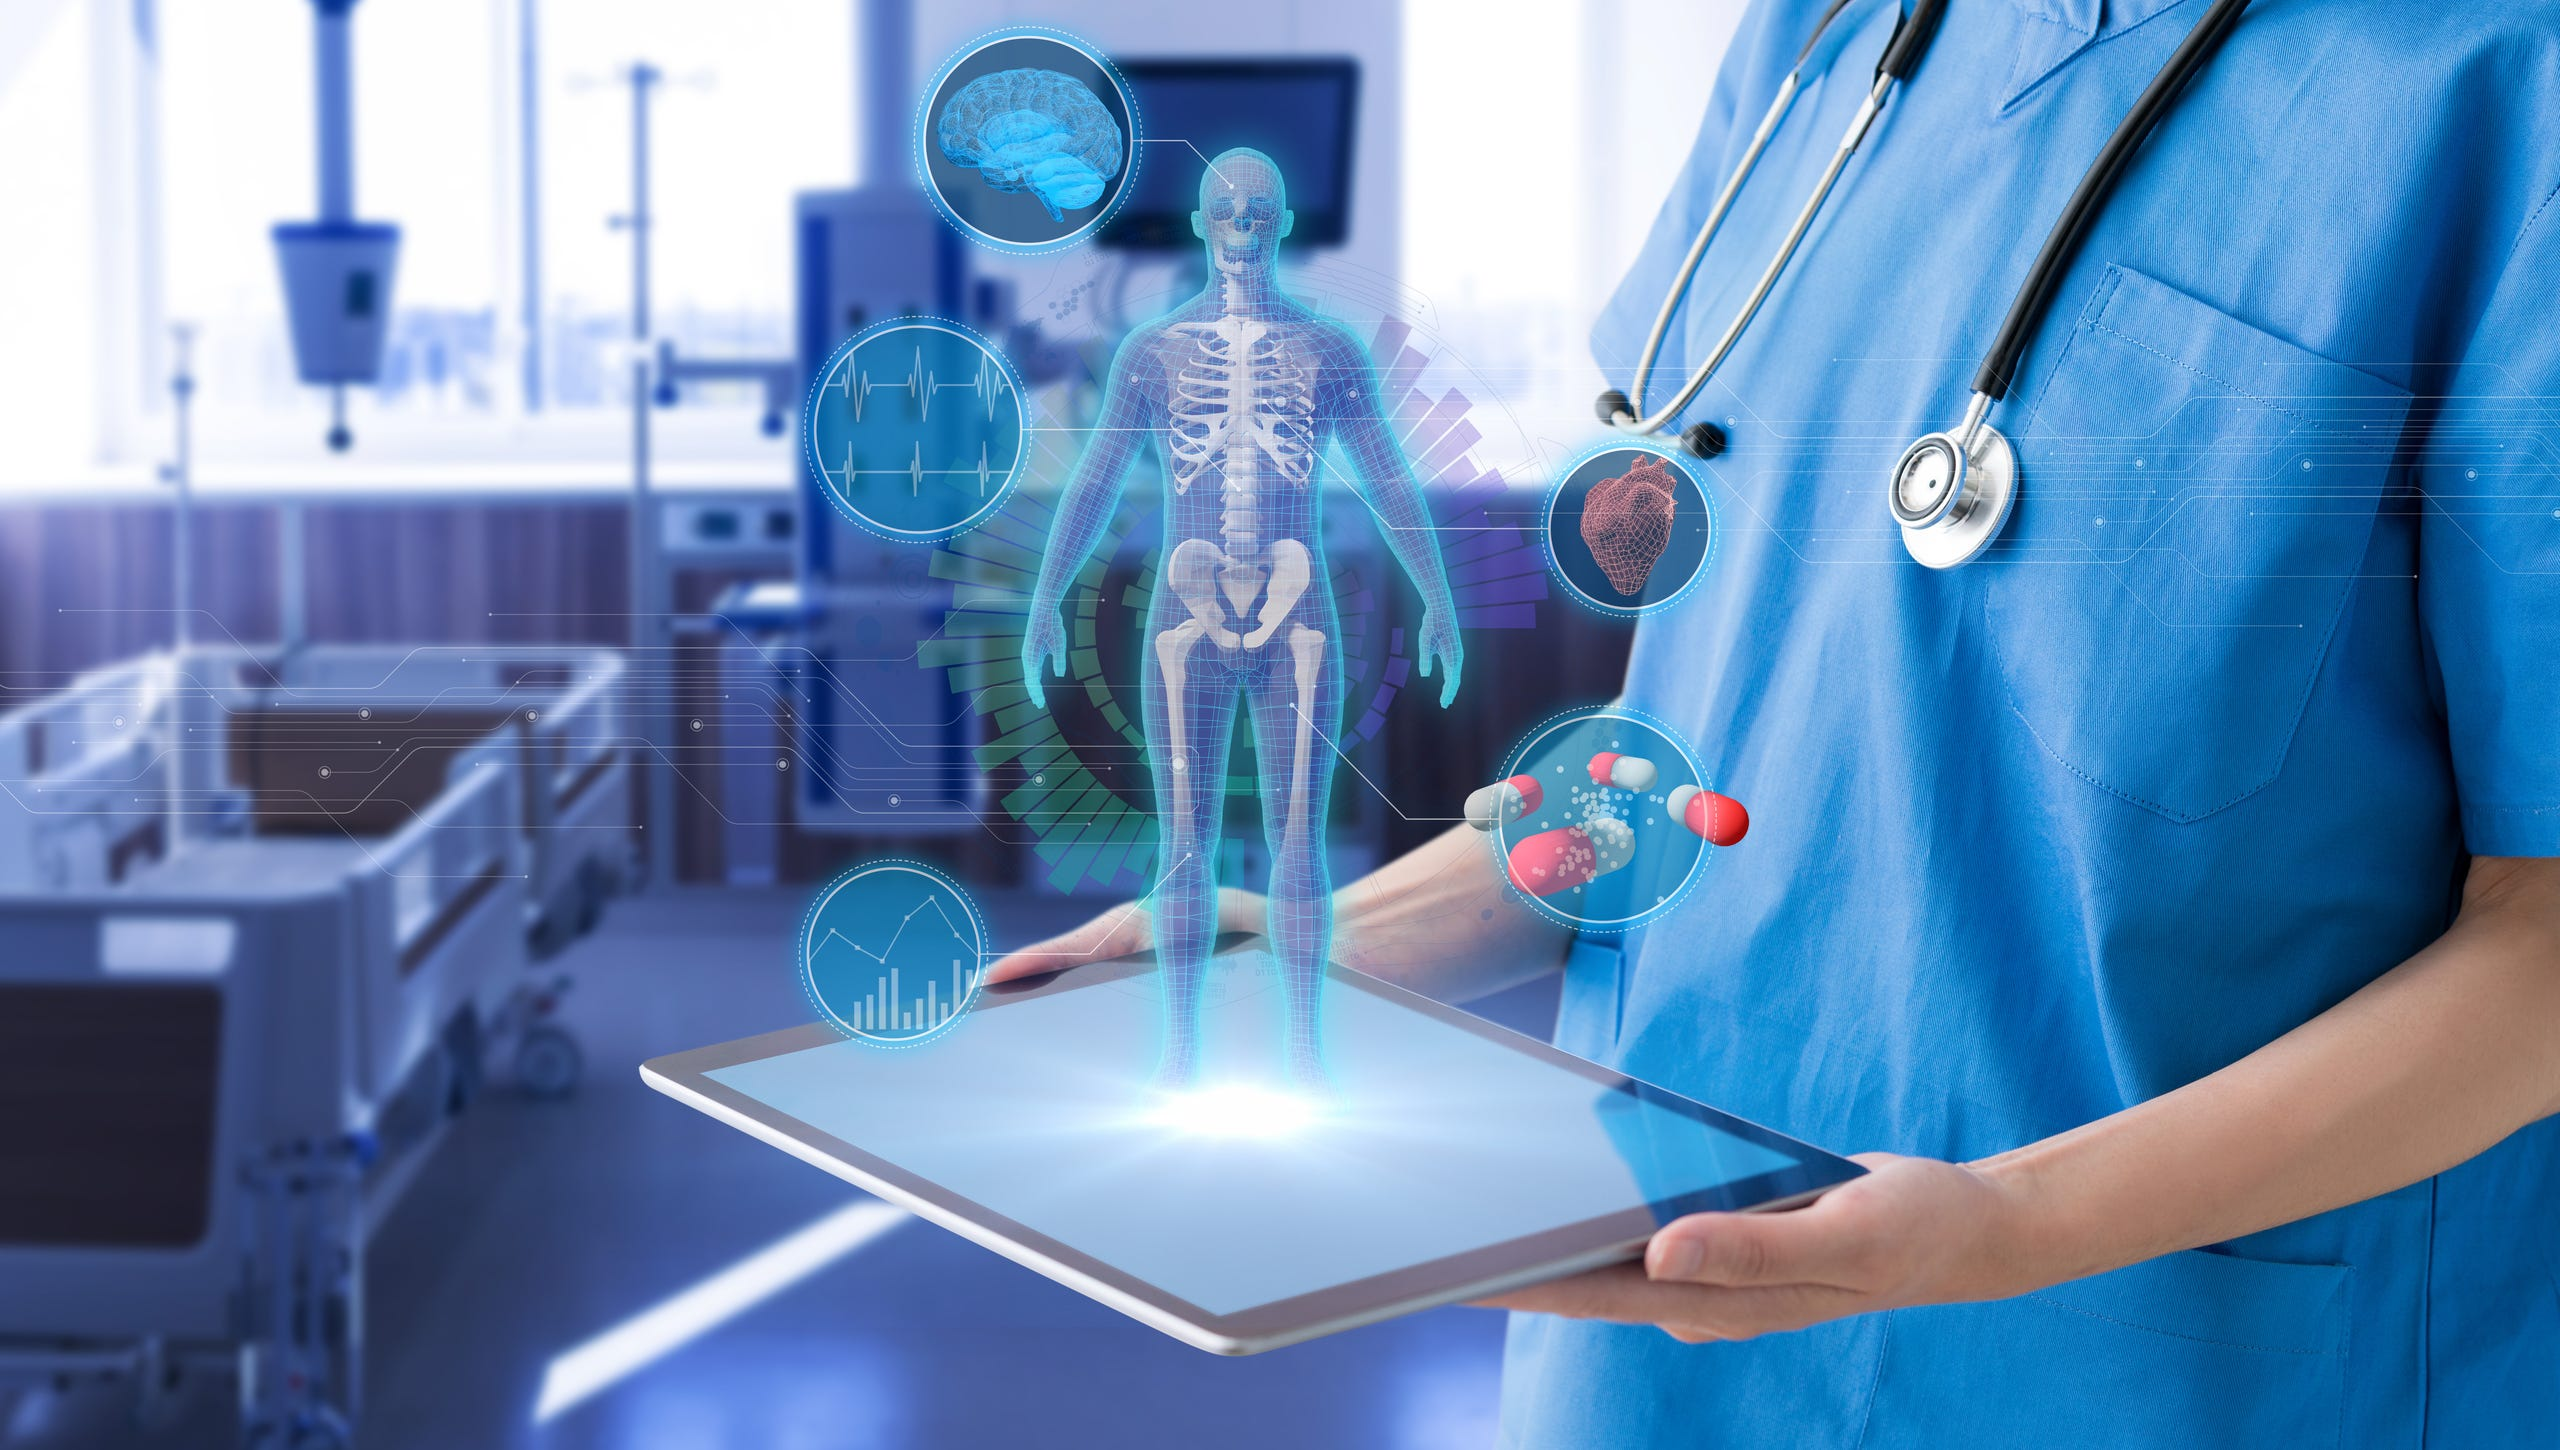 Heath care technology bringing greater benefits to patients.